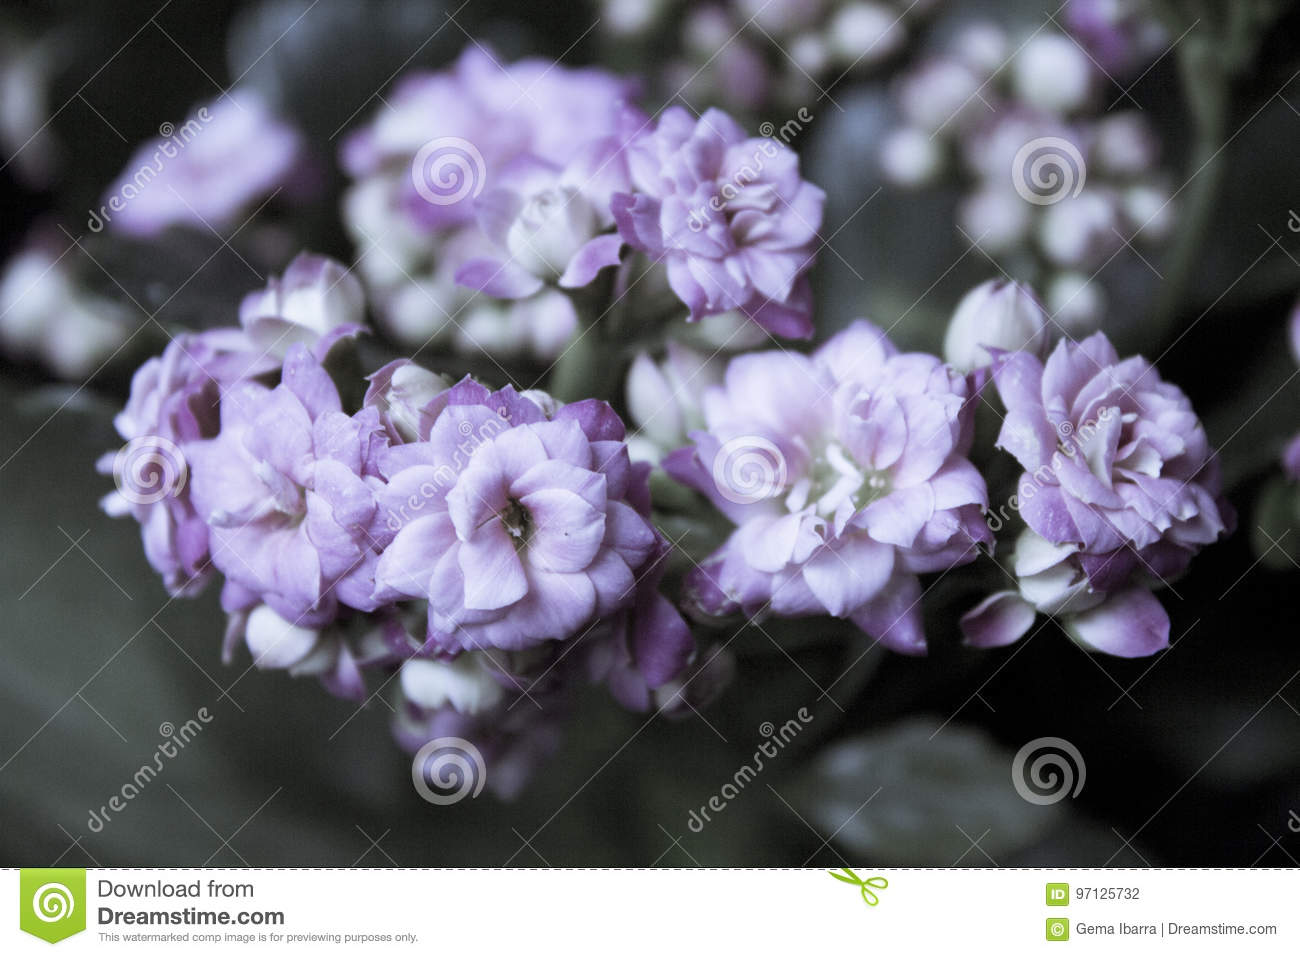 Plant With Pink Flowers Stock Photo Image Of Vase Nature 97125732